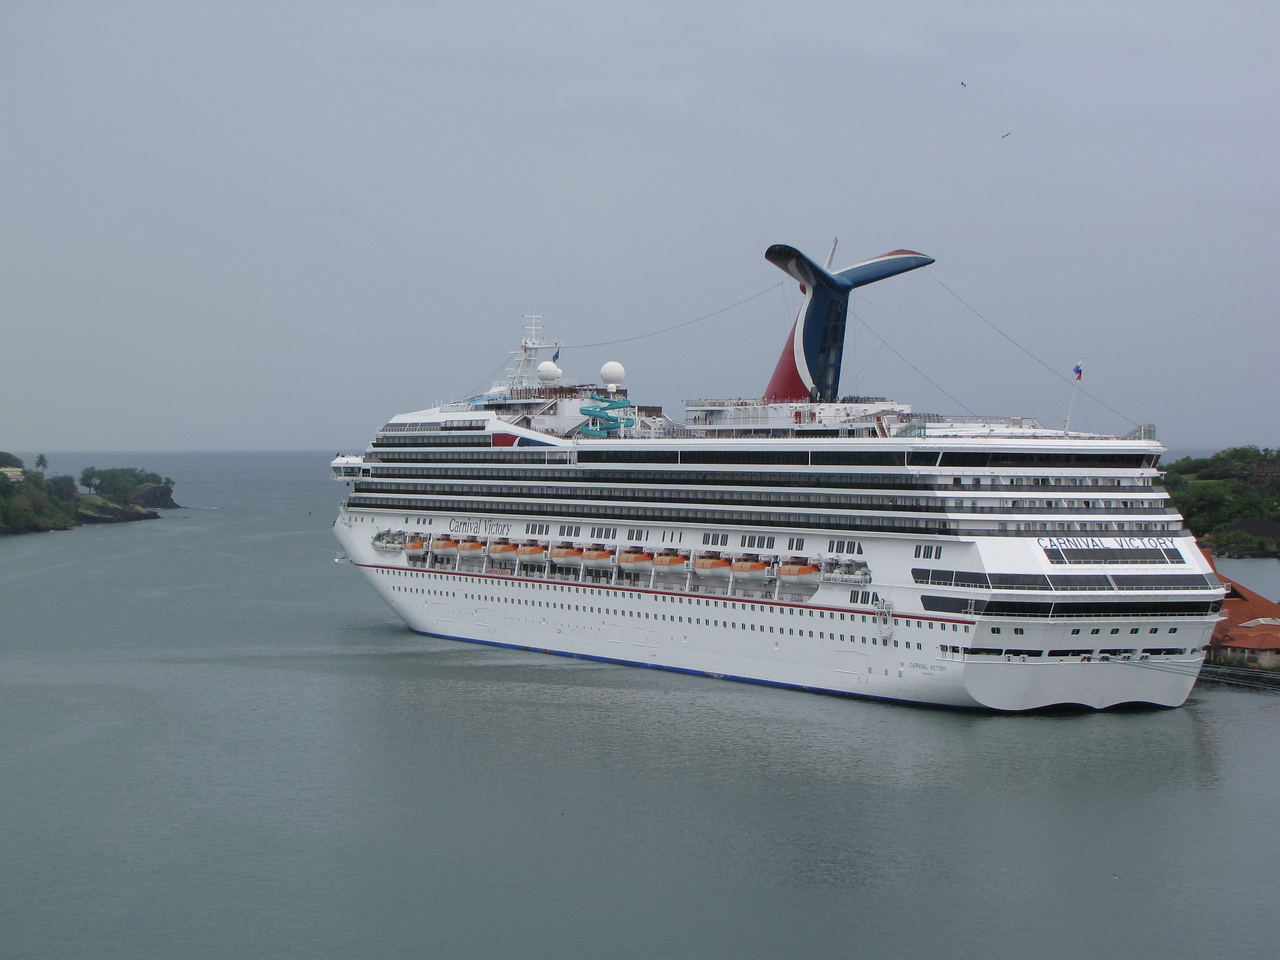 Another view of Carnival Victory.